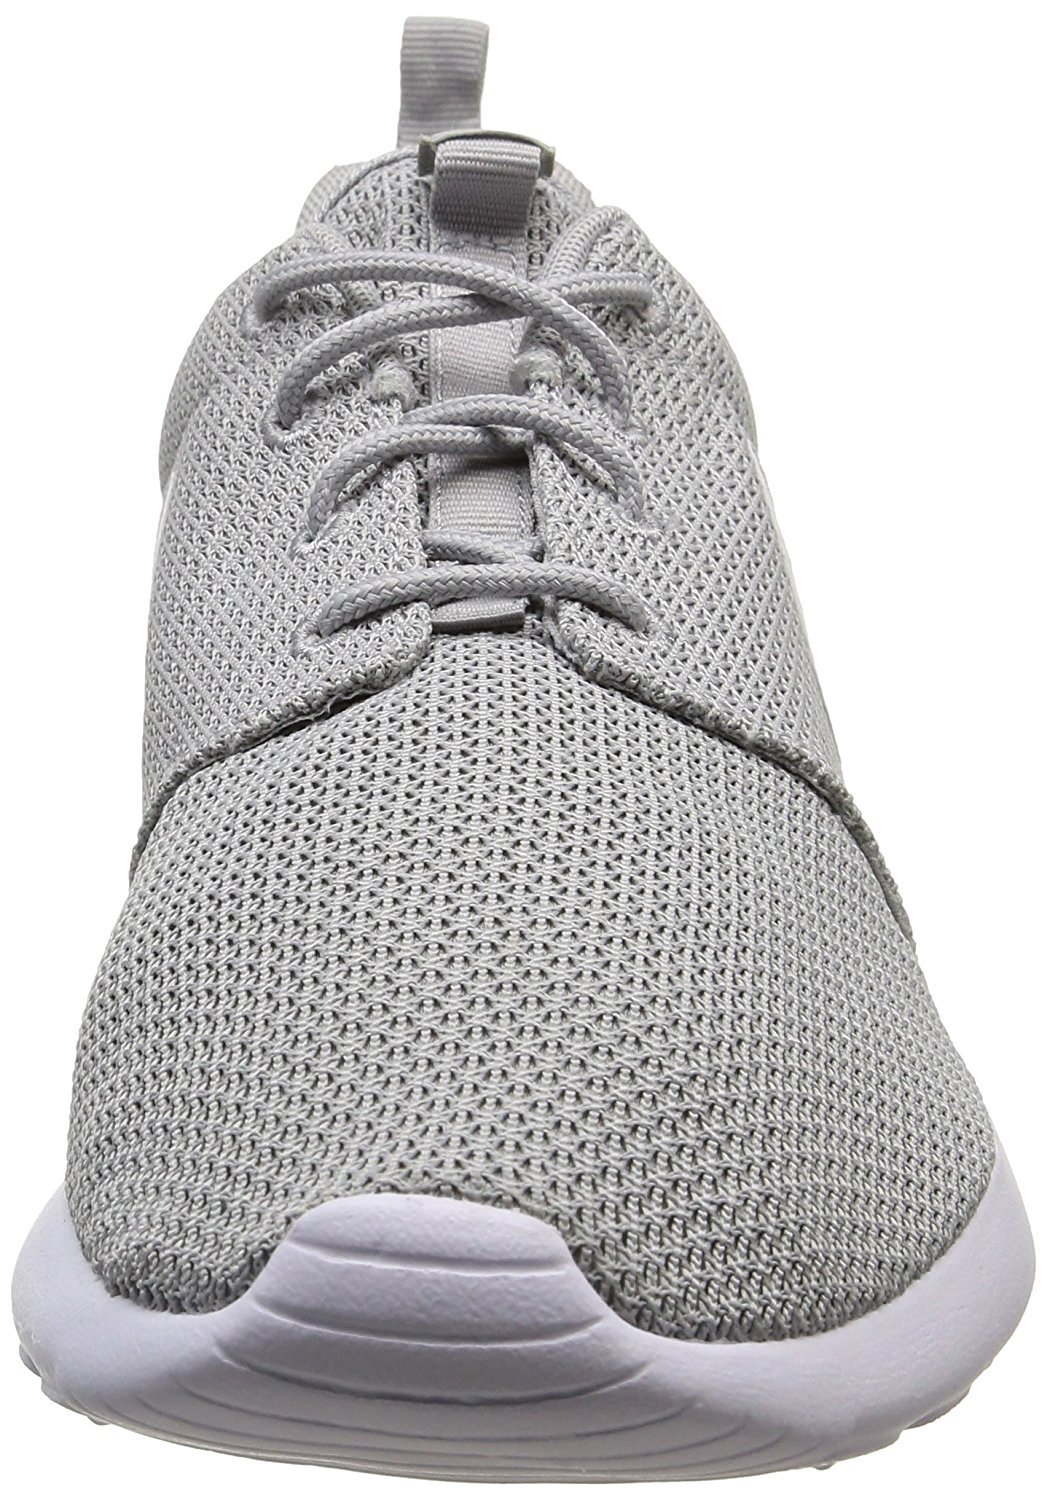 info for 0f66c 2a941 Amazon.com  Nike Roshe Run One Men s Shoes 511881-023(Gray, US6.5)  Sports    Outdoors